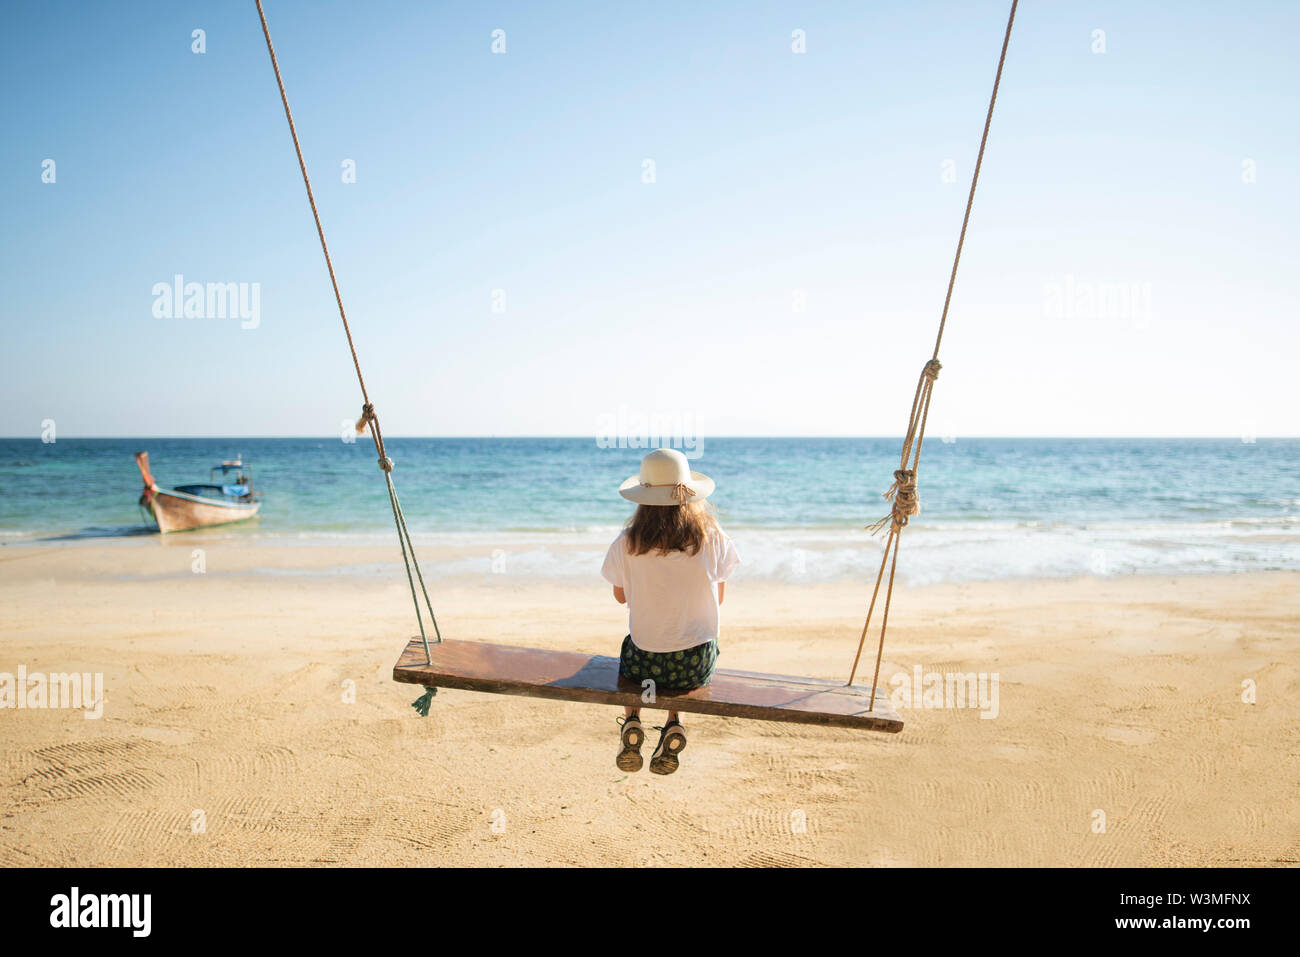 Young woman on swing at beach - Stock Image